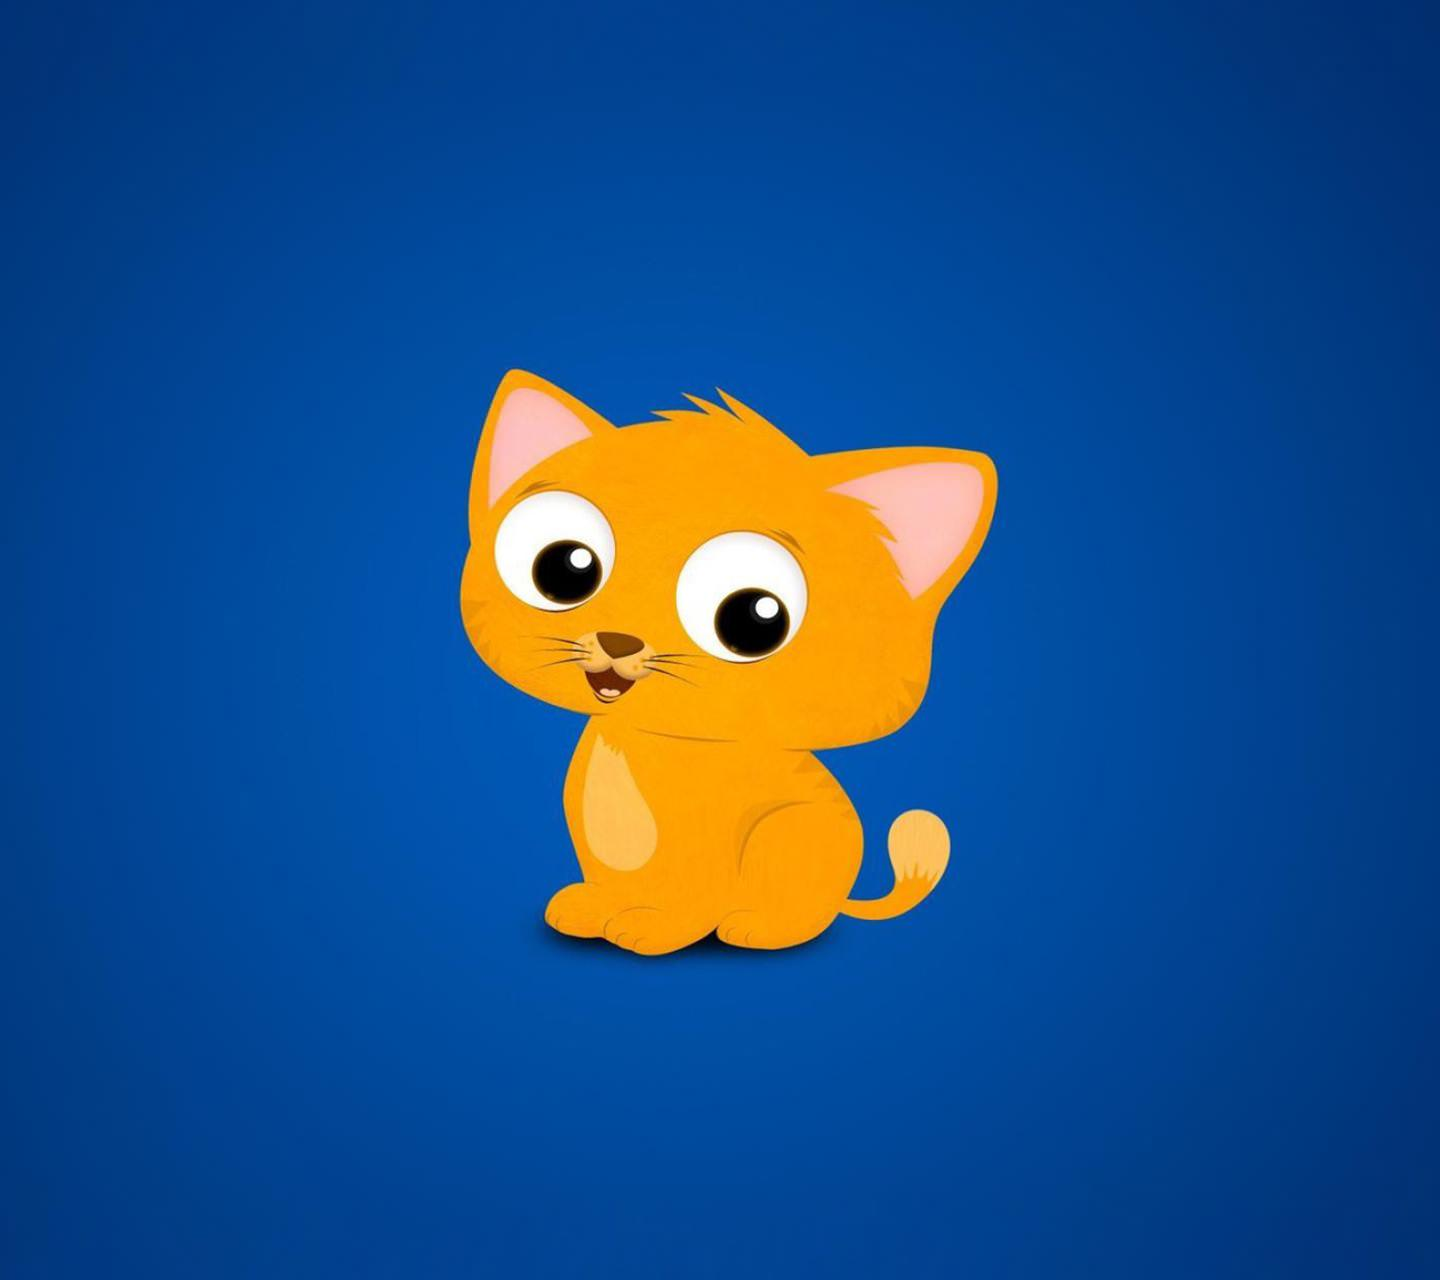 Unduh 500+ Wallpaper Biru Cat HD Gratis